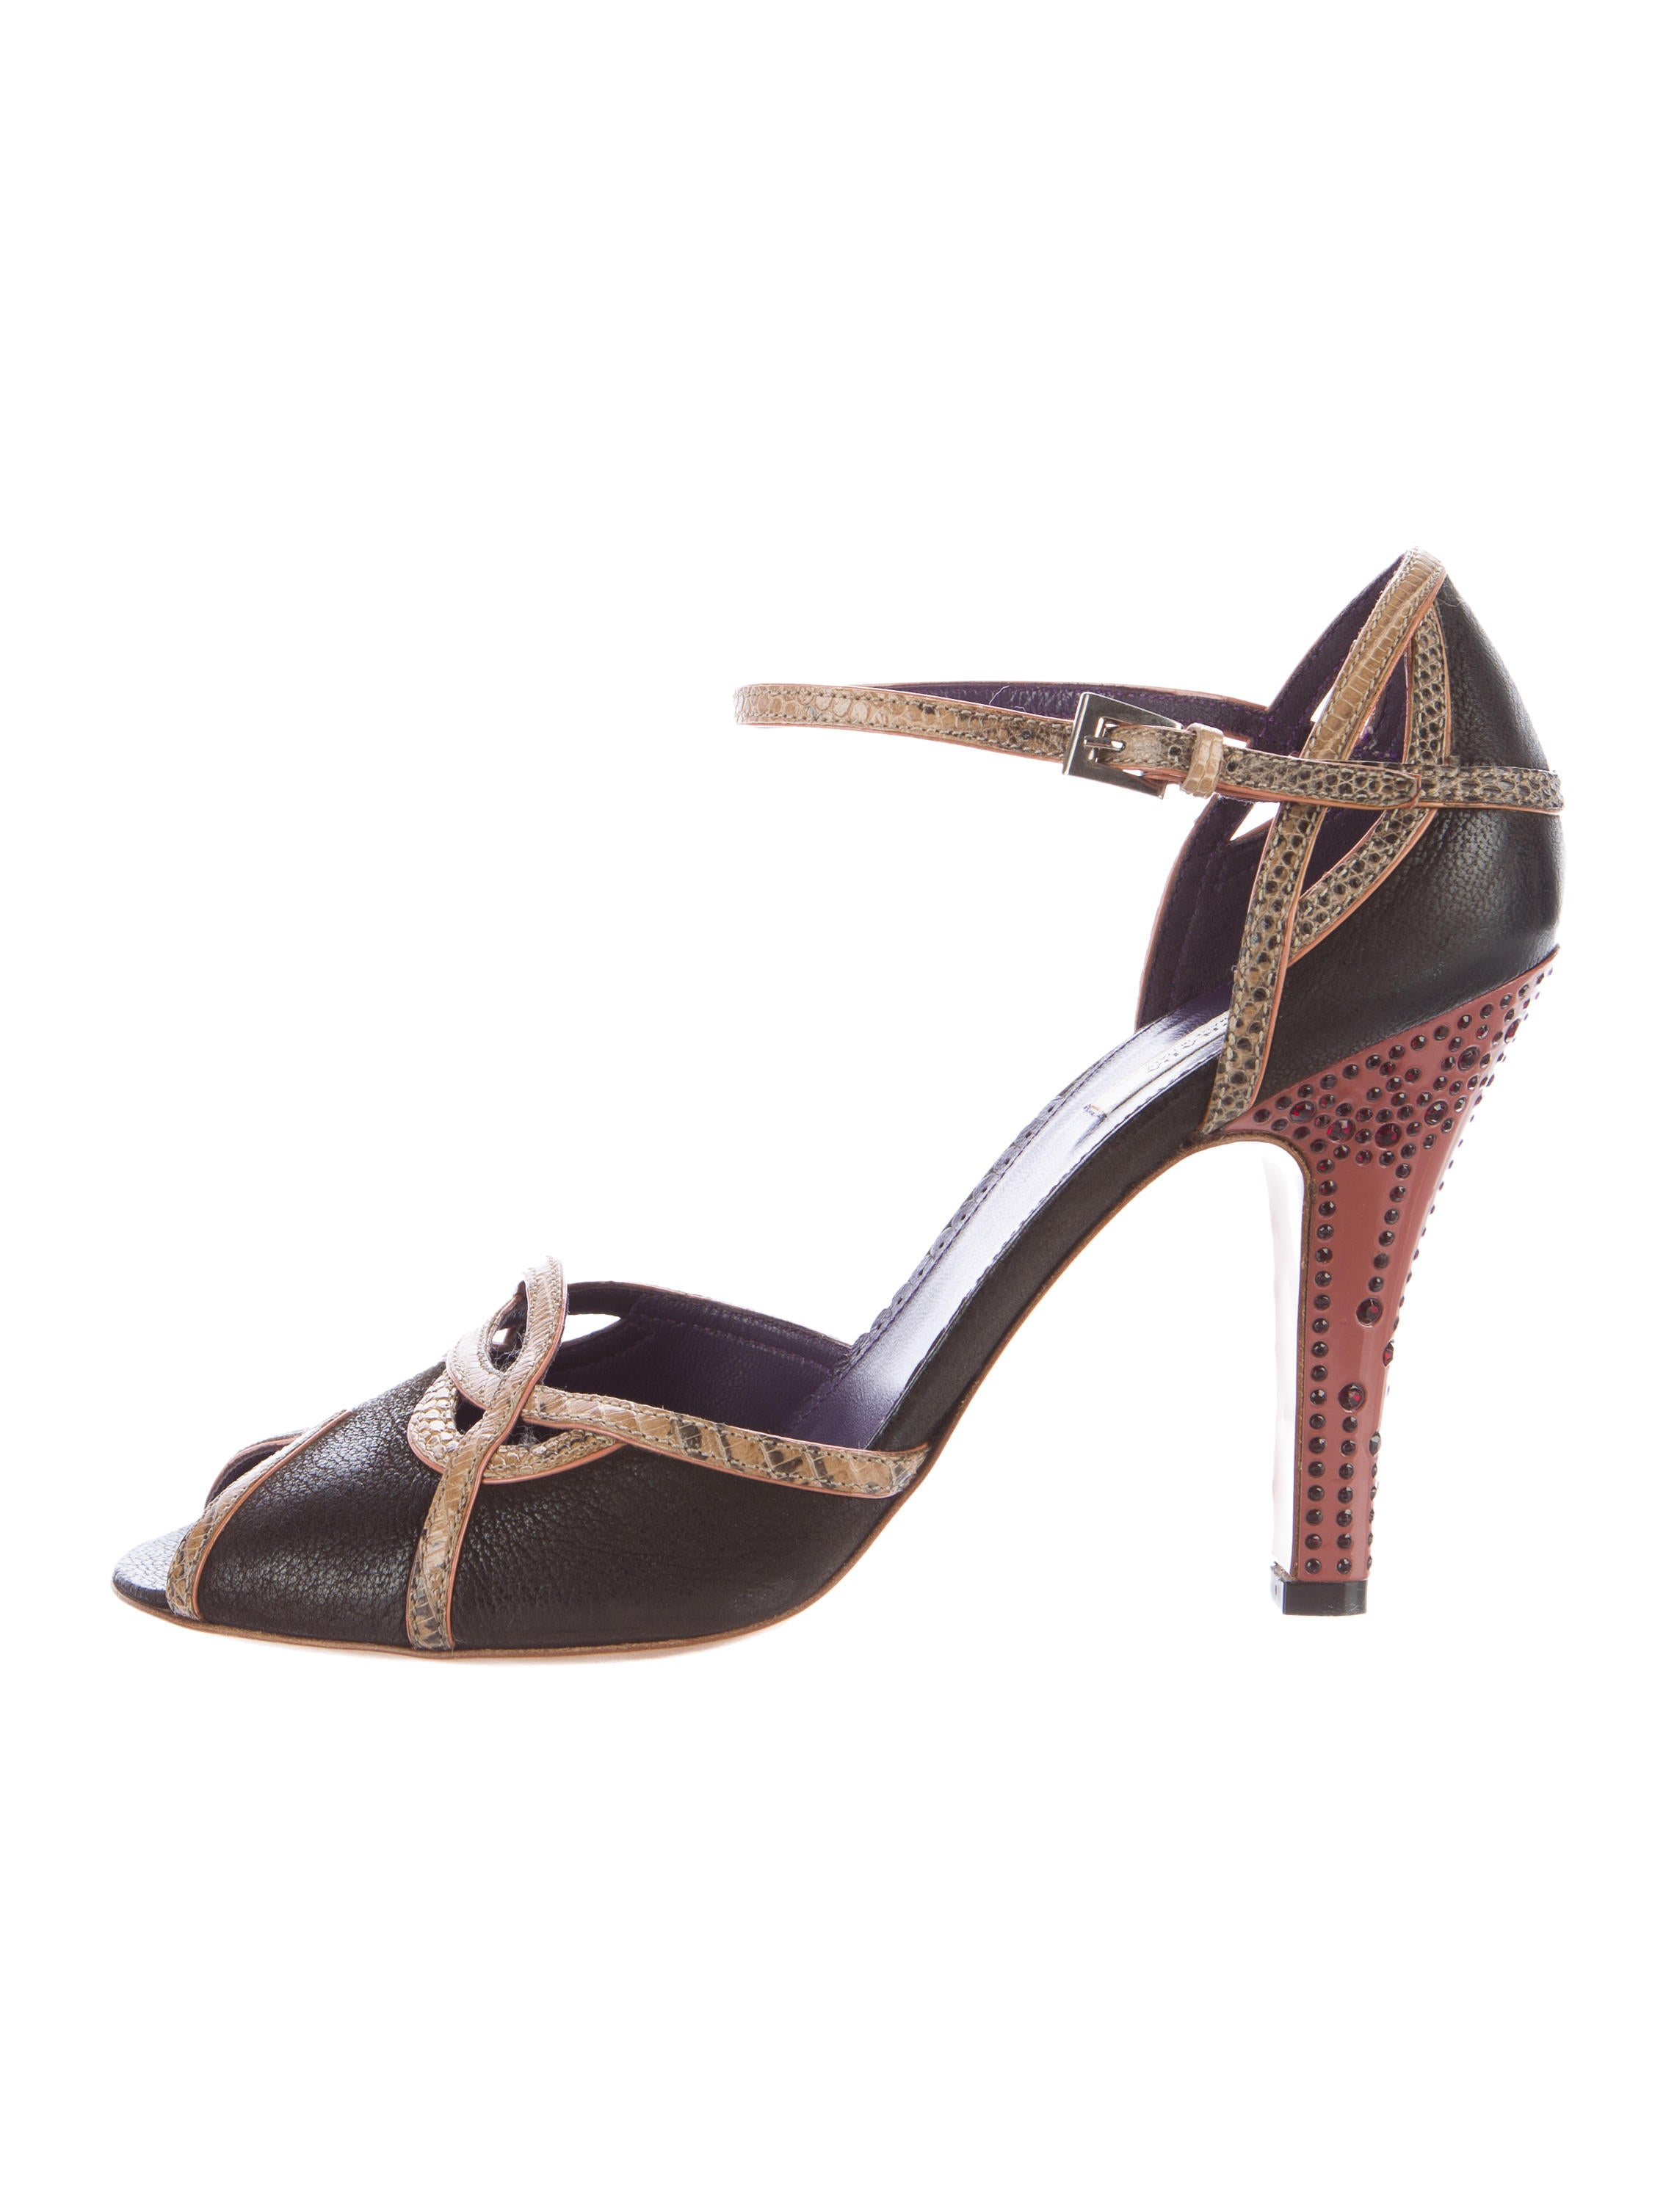 Prada Lizard-Trimmed Ankle Strap Sandals low shipping fee cheap online nrbOPlA9r